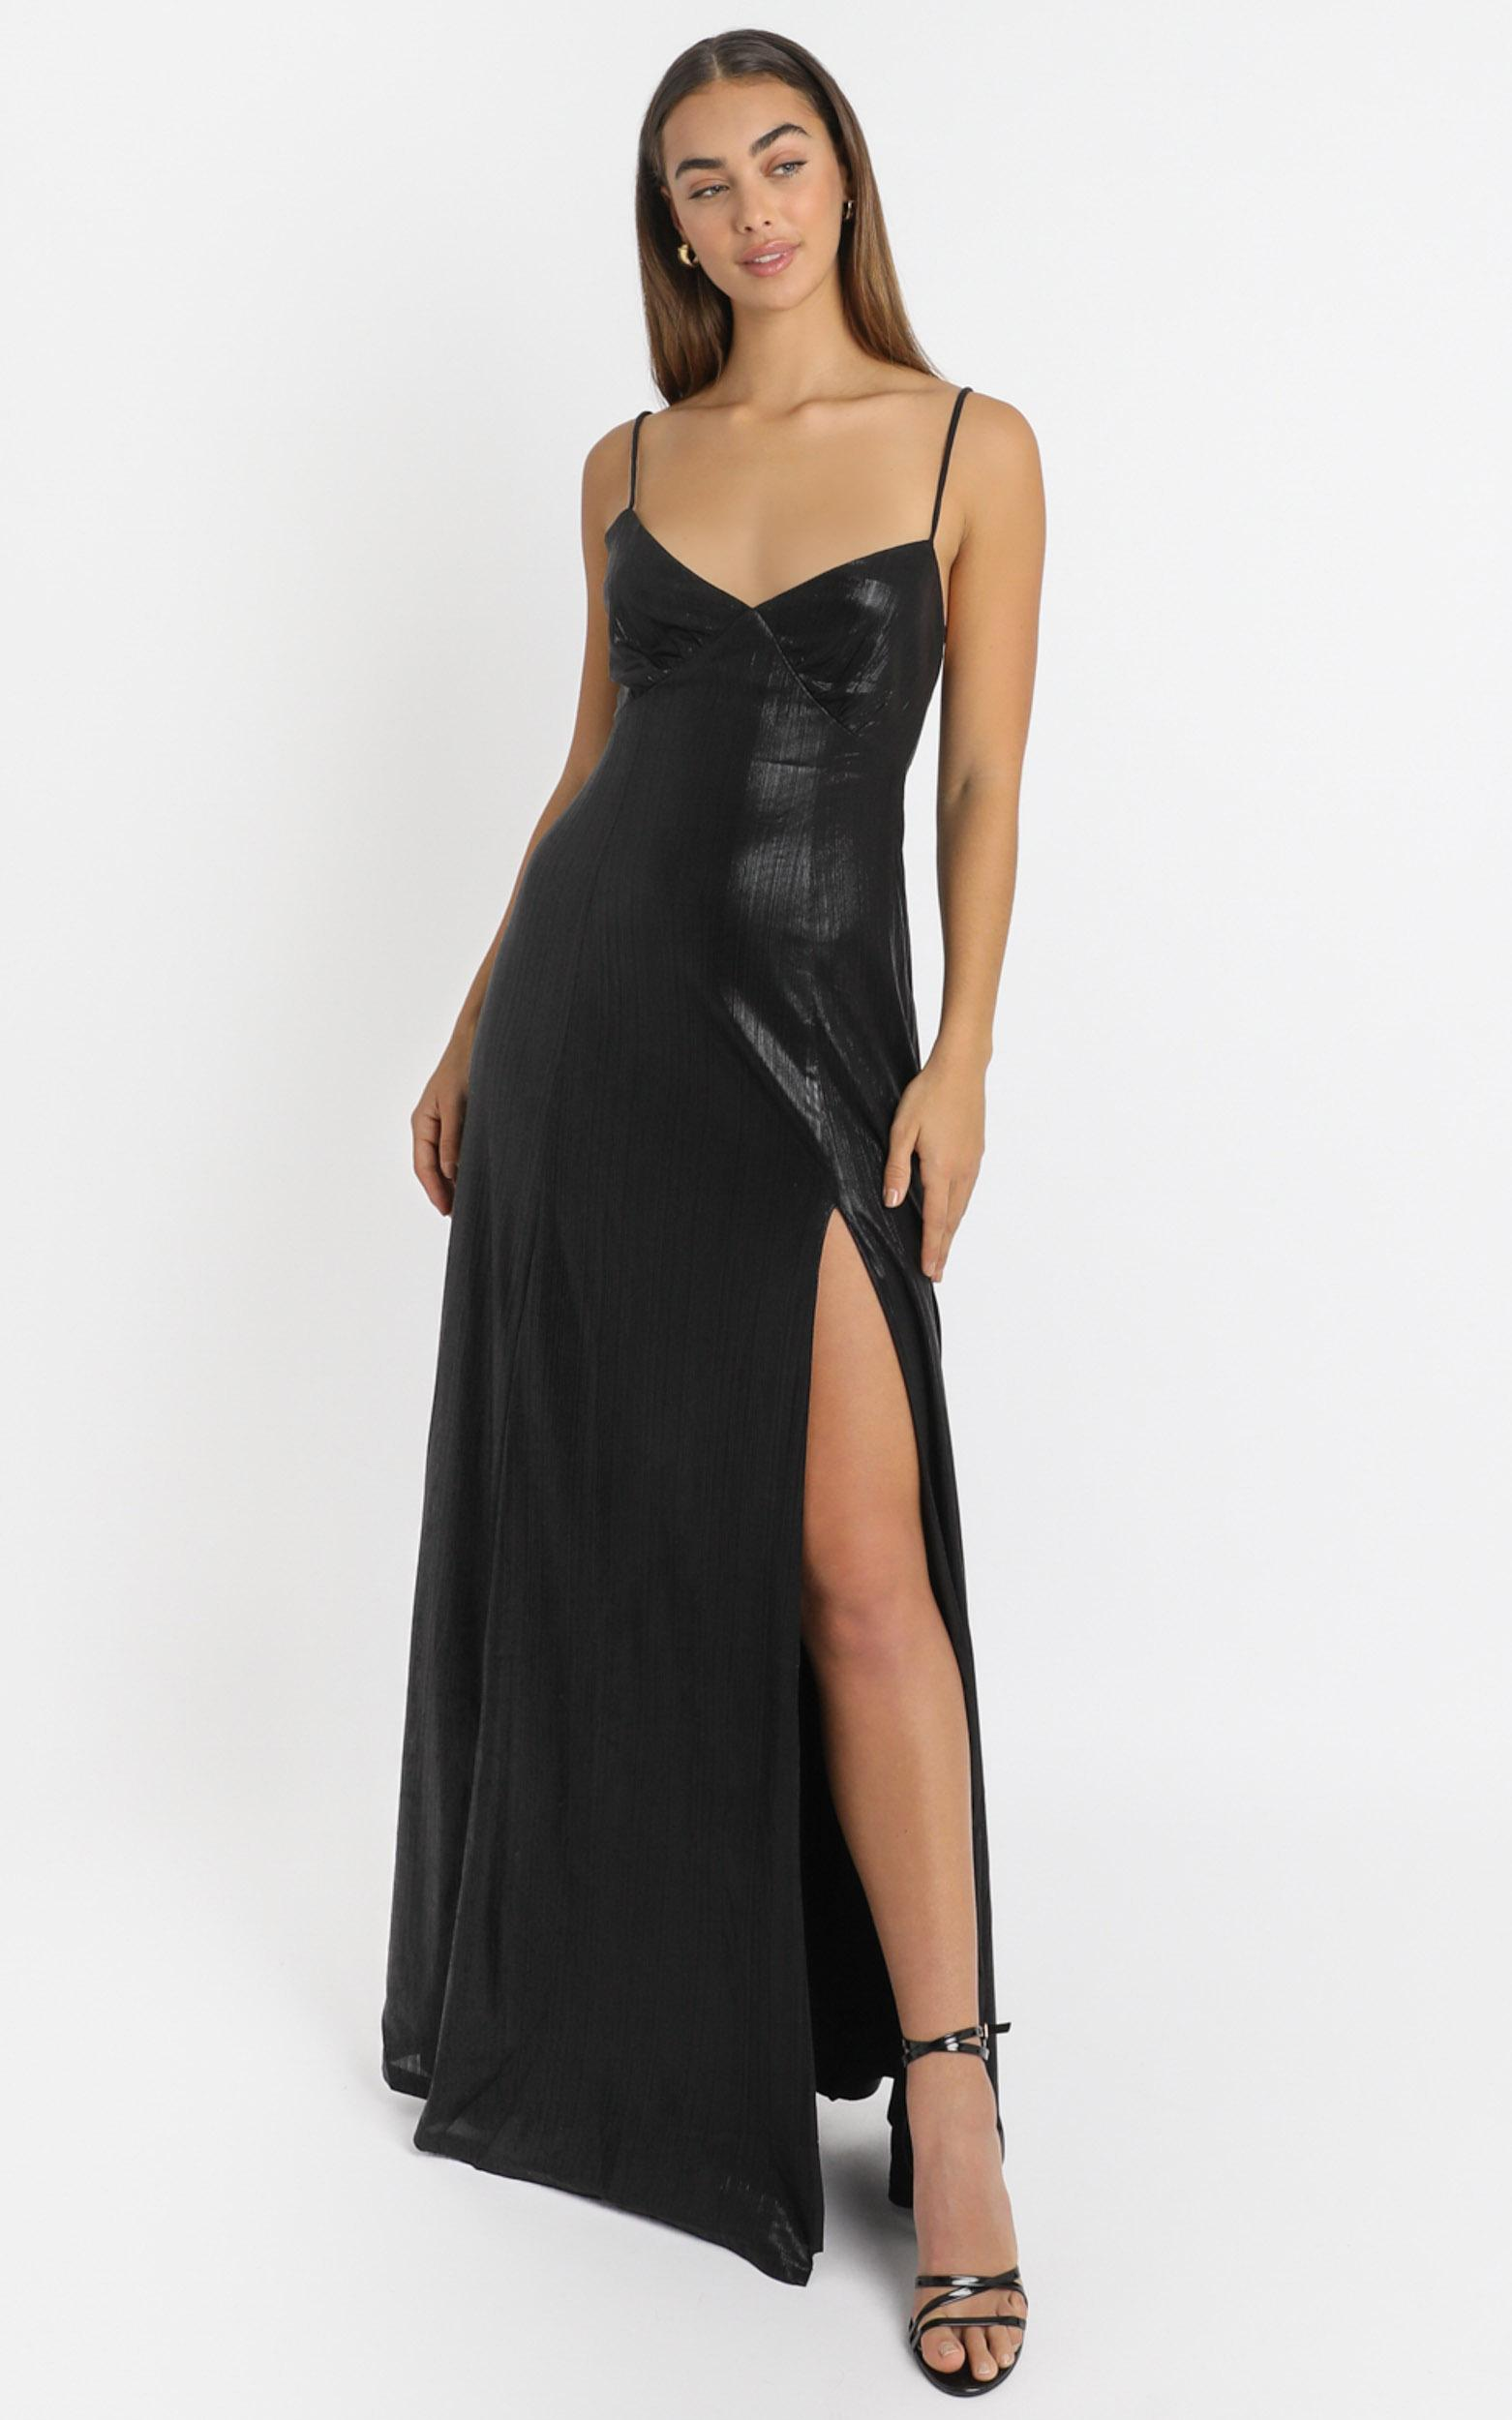 Kate Strappy Maxi Dress in black metallic - 6 (XS), Black, hi-res image number null